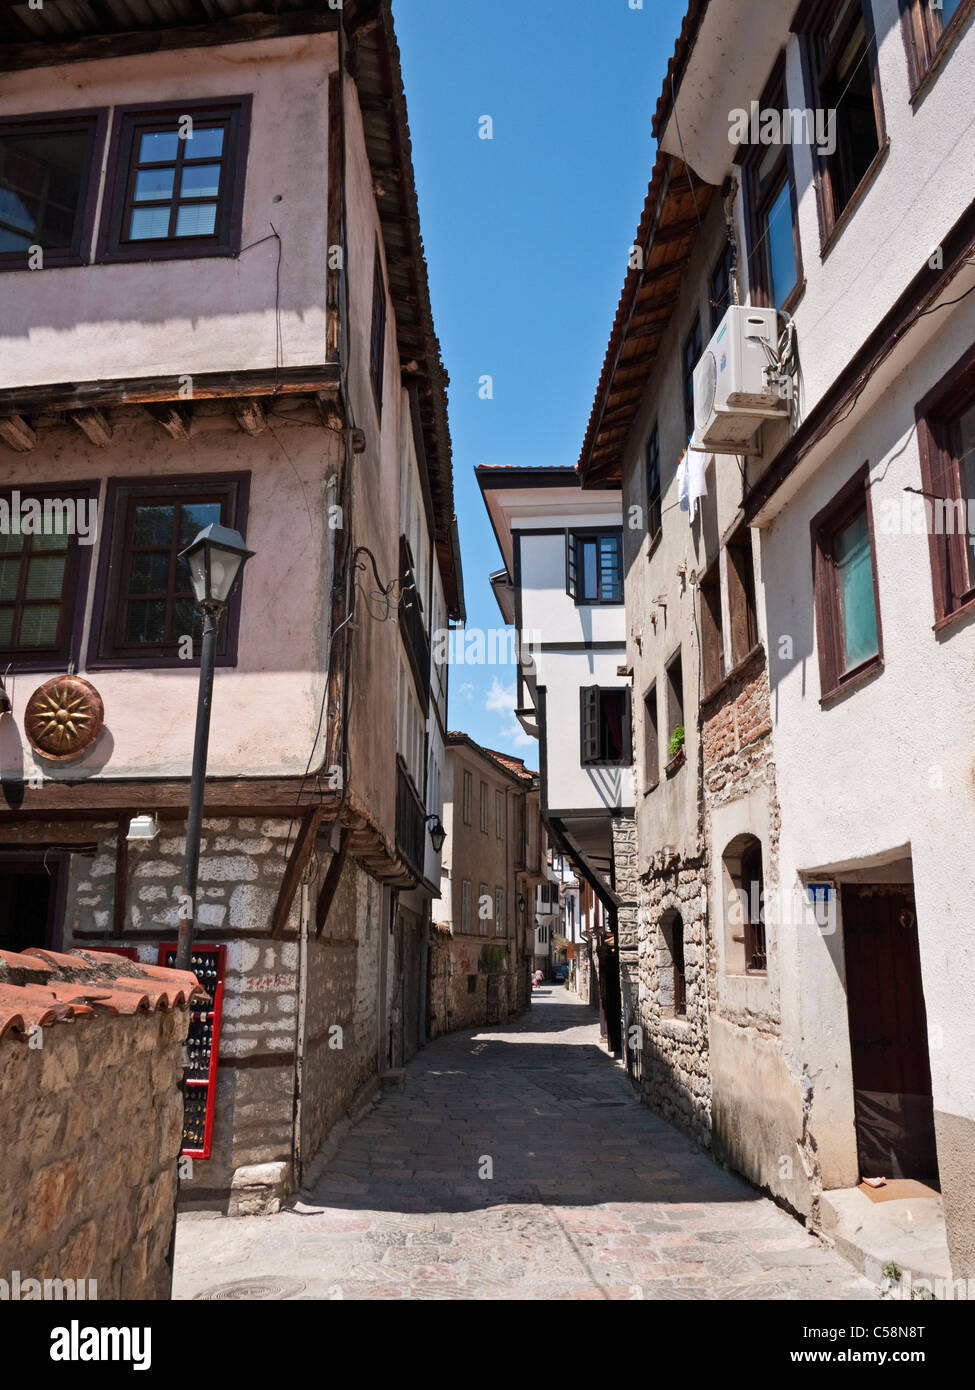 Street view in Ohrid old town, Macedonia - Stock Image